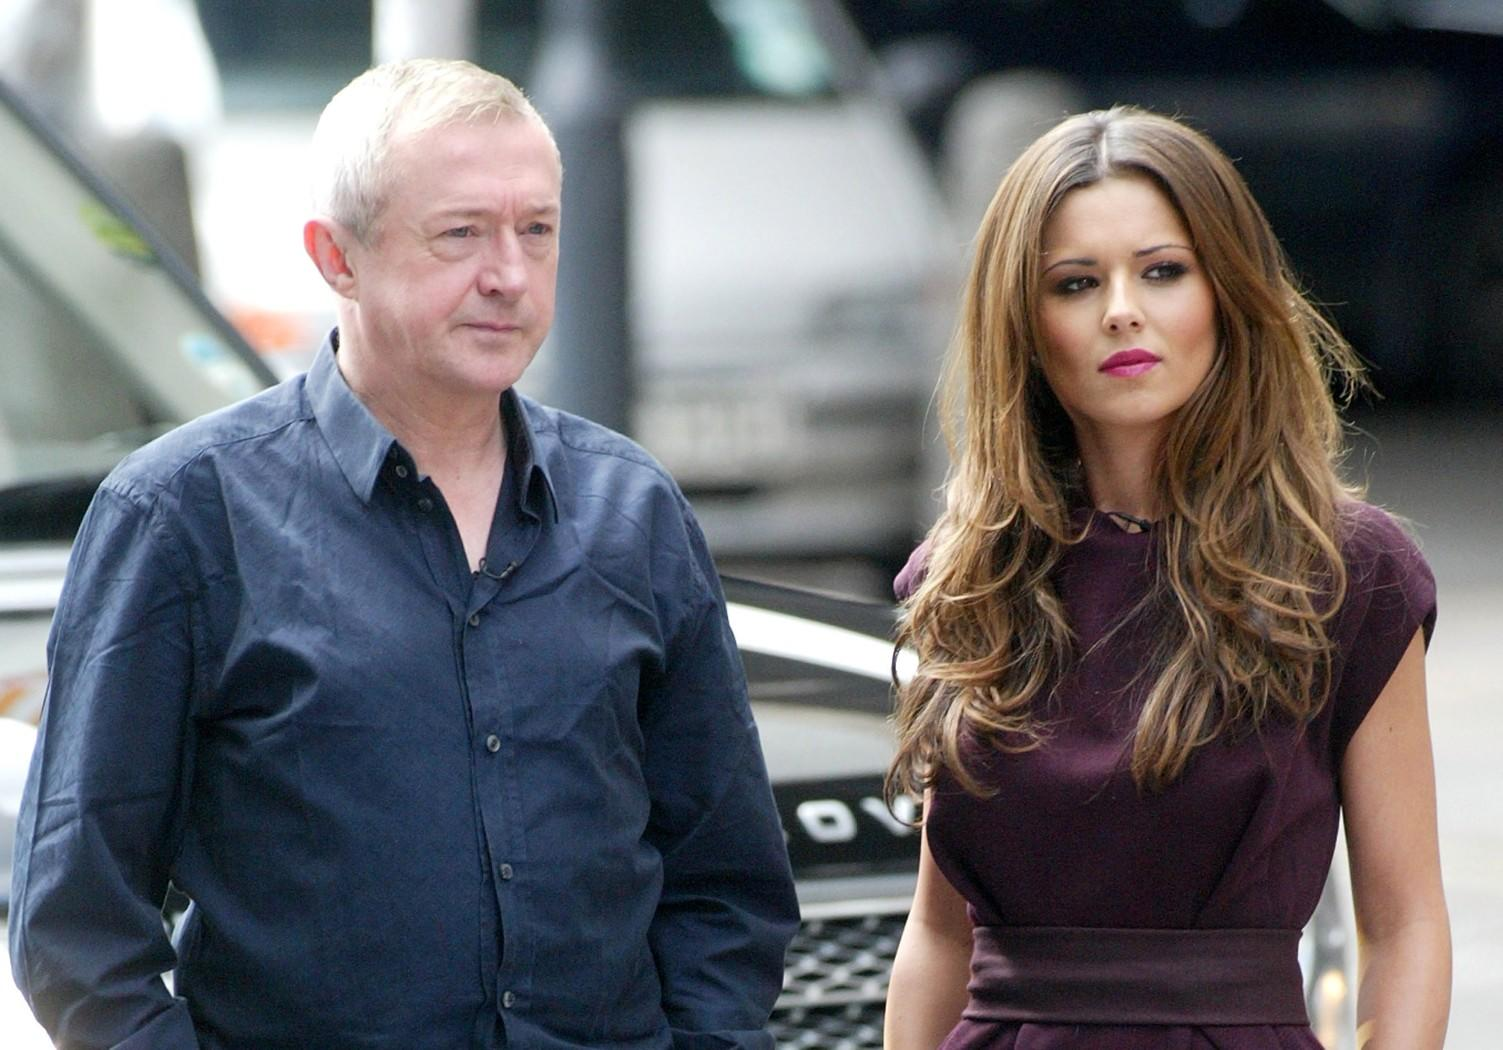 'The X Factor' judge Louis Walsh says Cheryl could only win the singing competition if she lip-synced